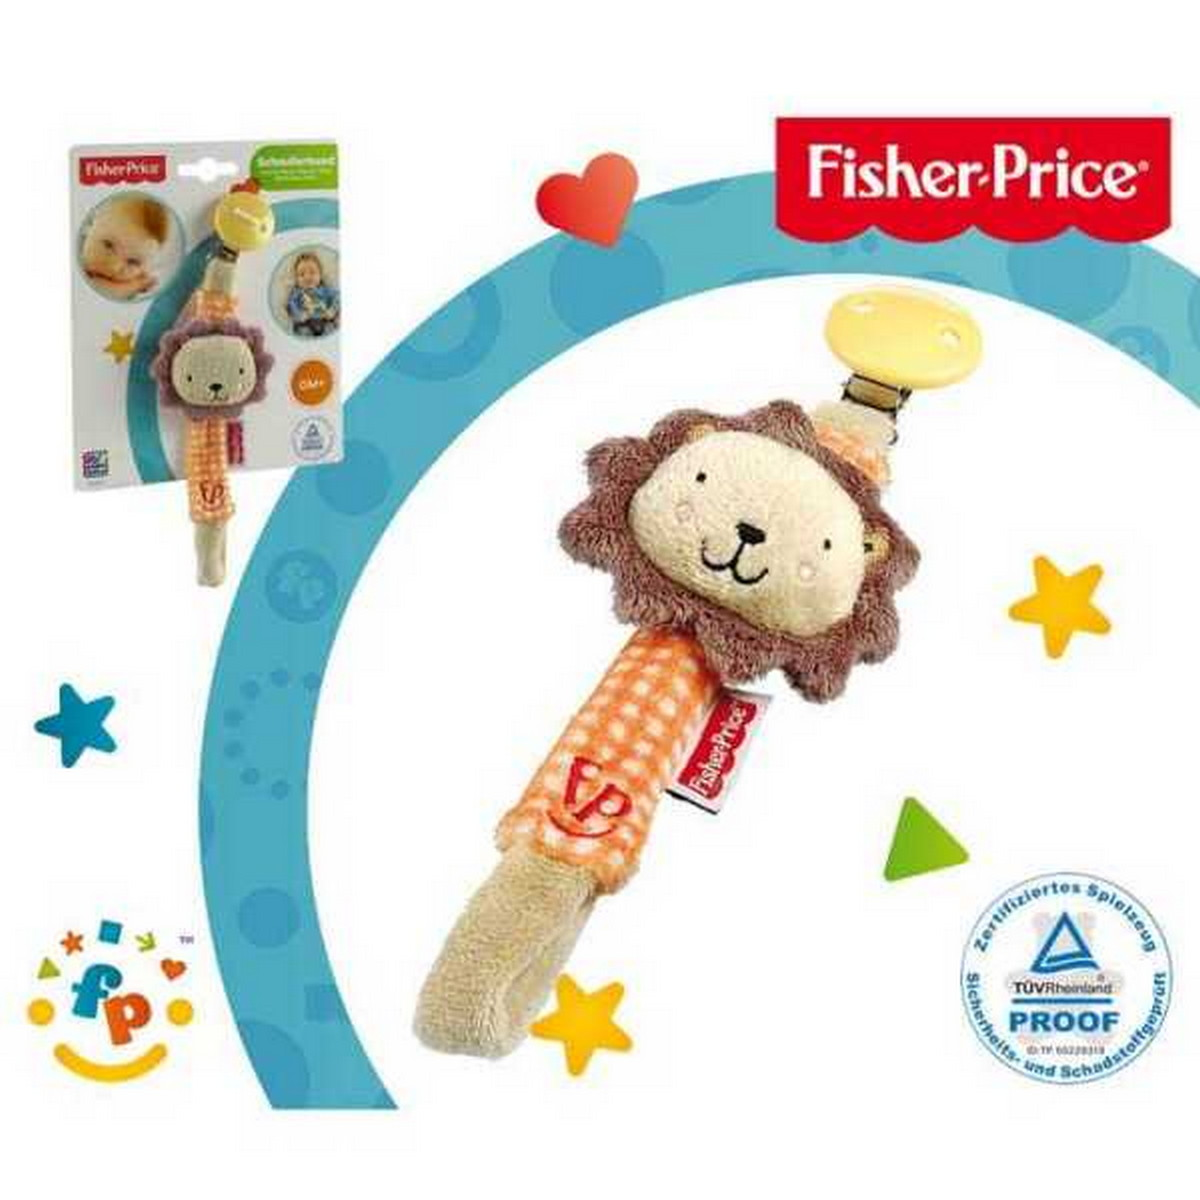 Fisher-Price Schnullerband Löwe orange/braun 14. - 40816